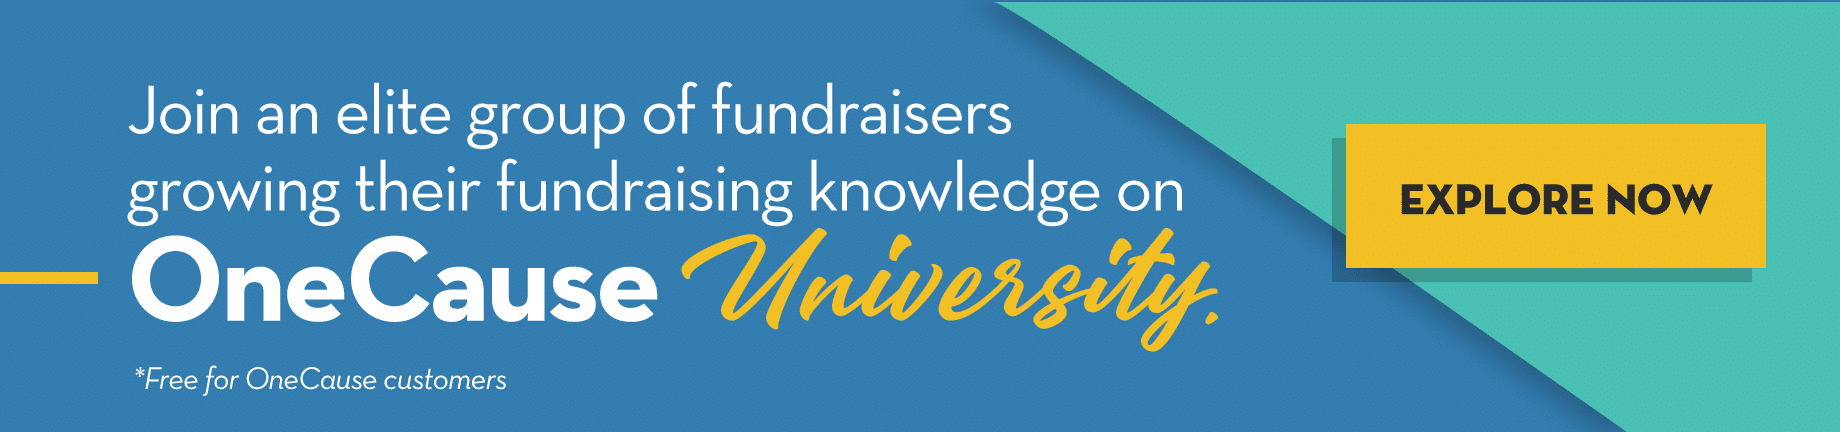 join-an-elite-group-of-fundraisers-growing-their-fundraising-knowledge-on-onecause-university-cta-top